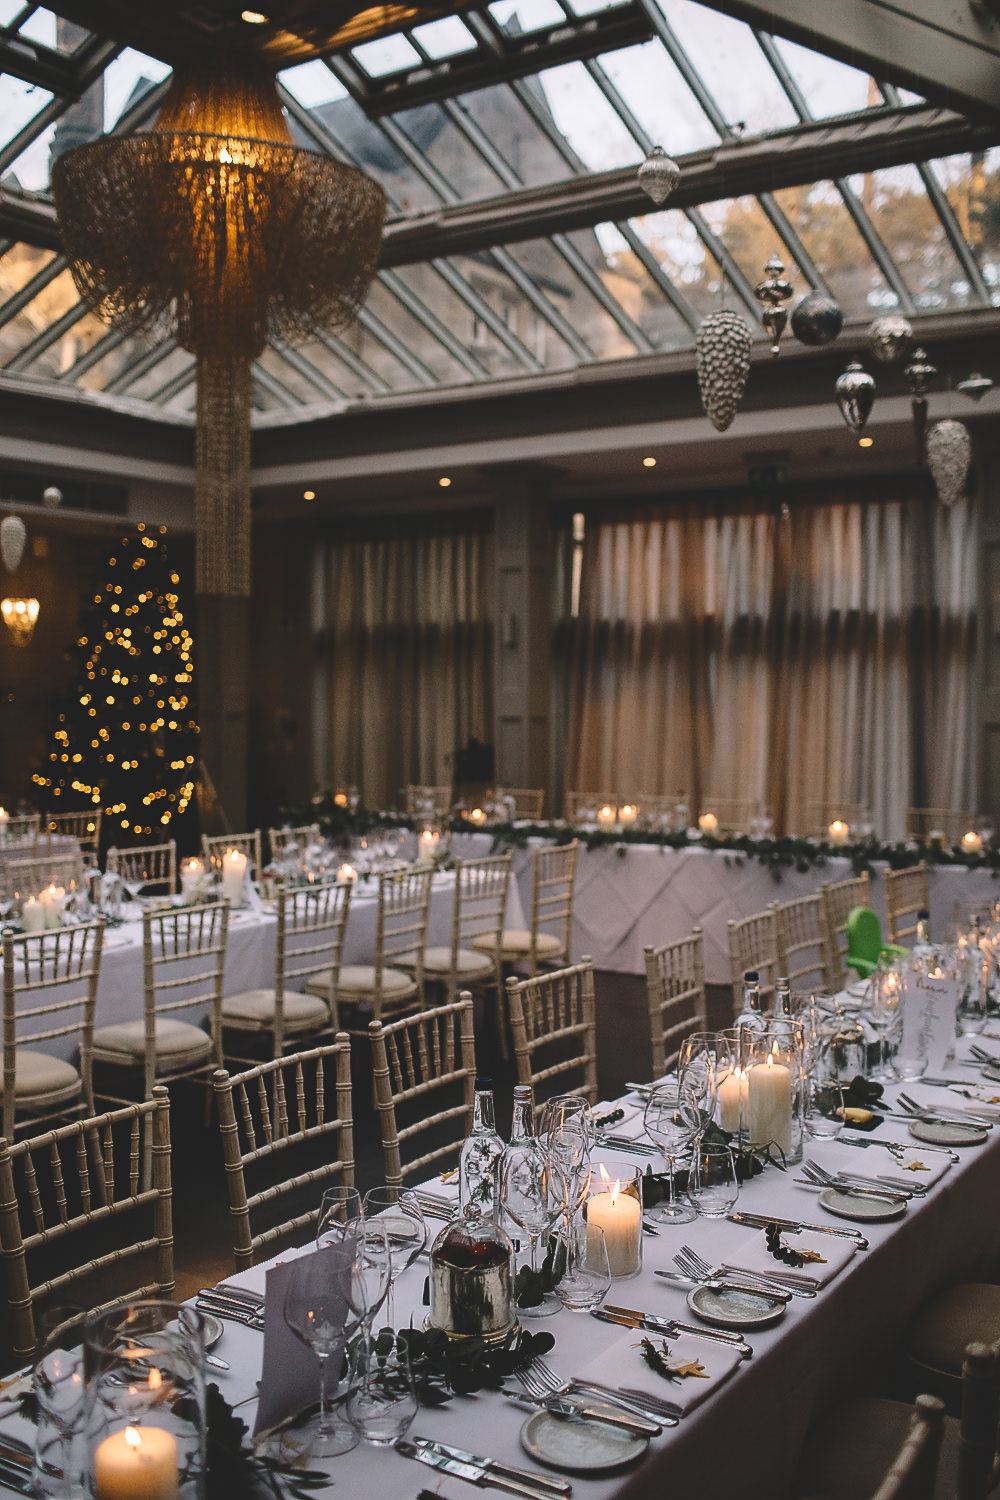 Table Tablescape Decor Greenery Foliage Garland Swag Long Christmas Tree Hampton Manor Wedding Carrie Lavers Photography